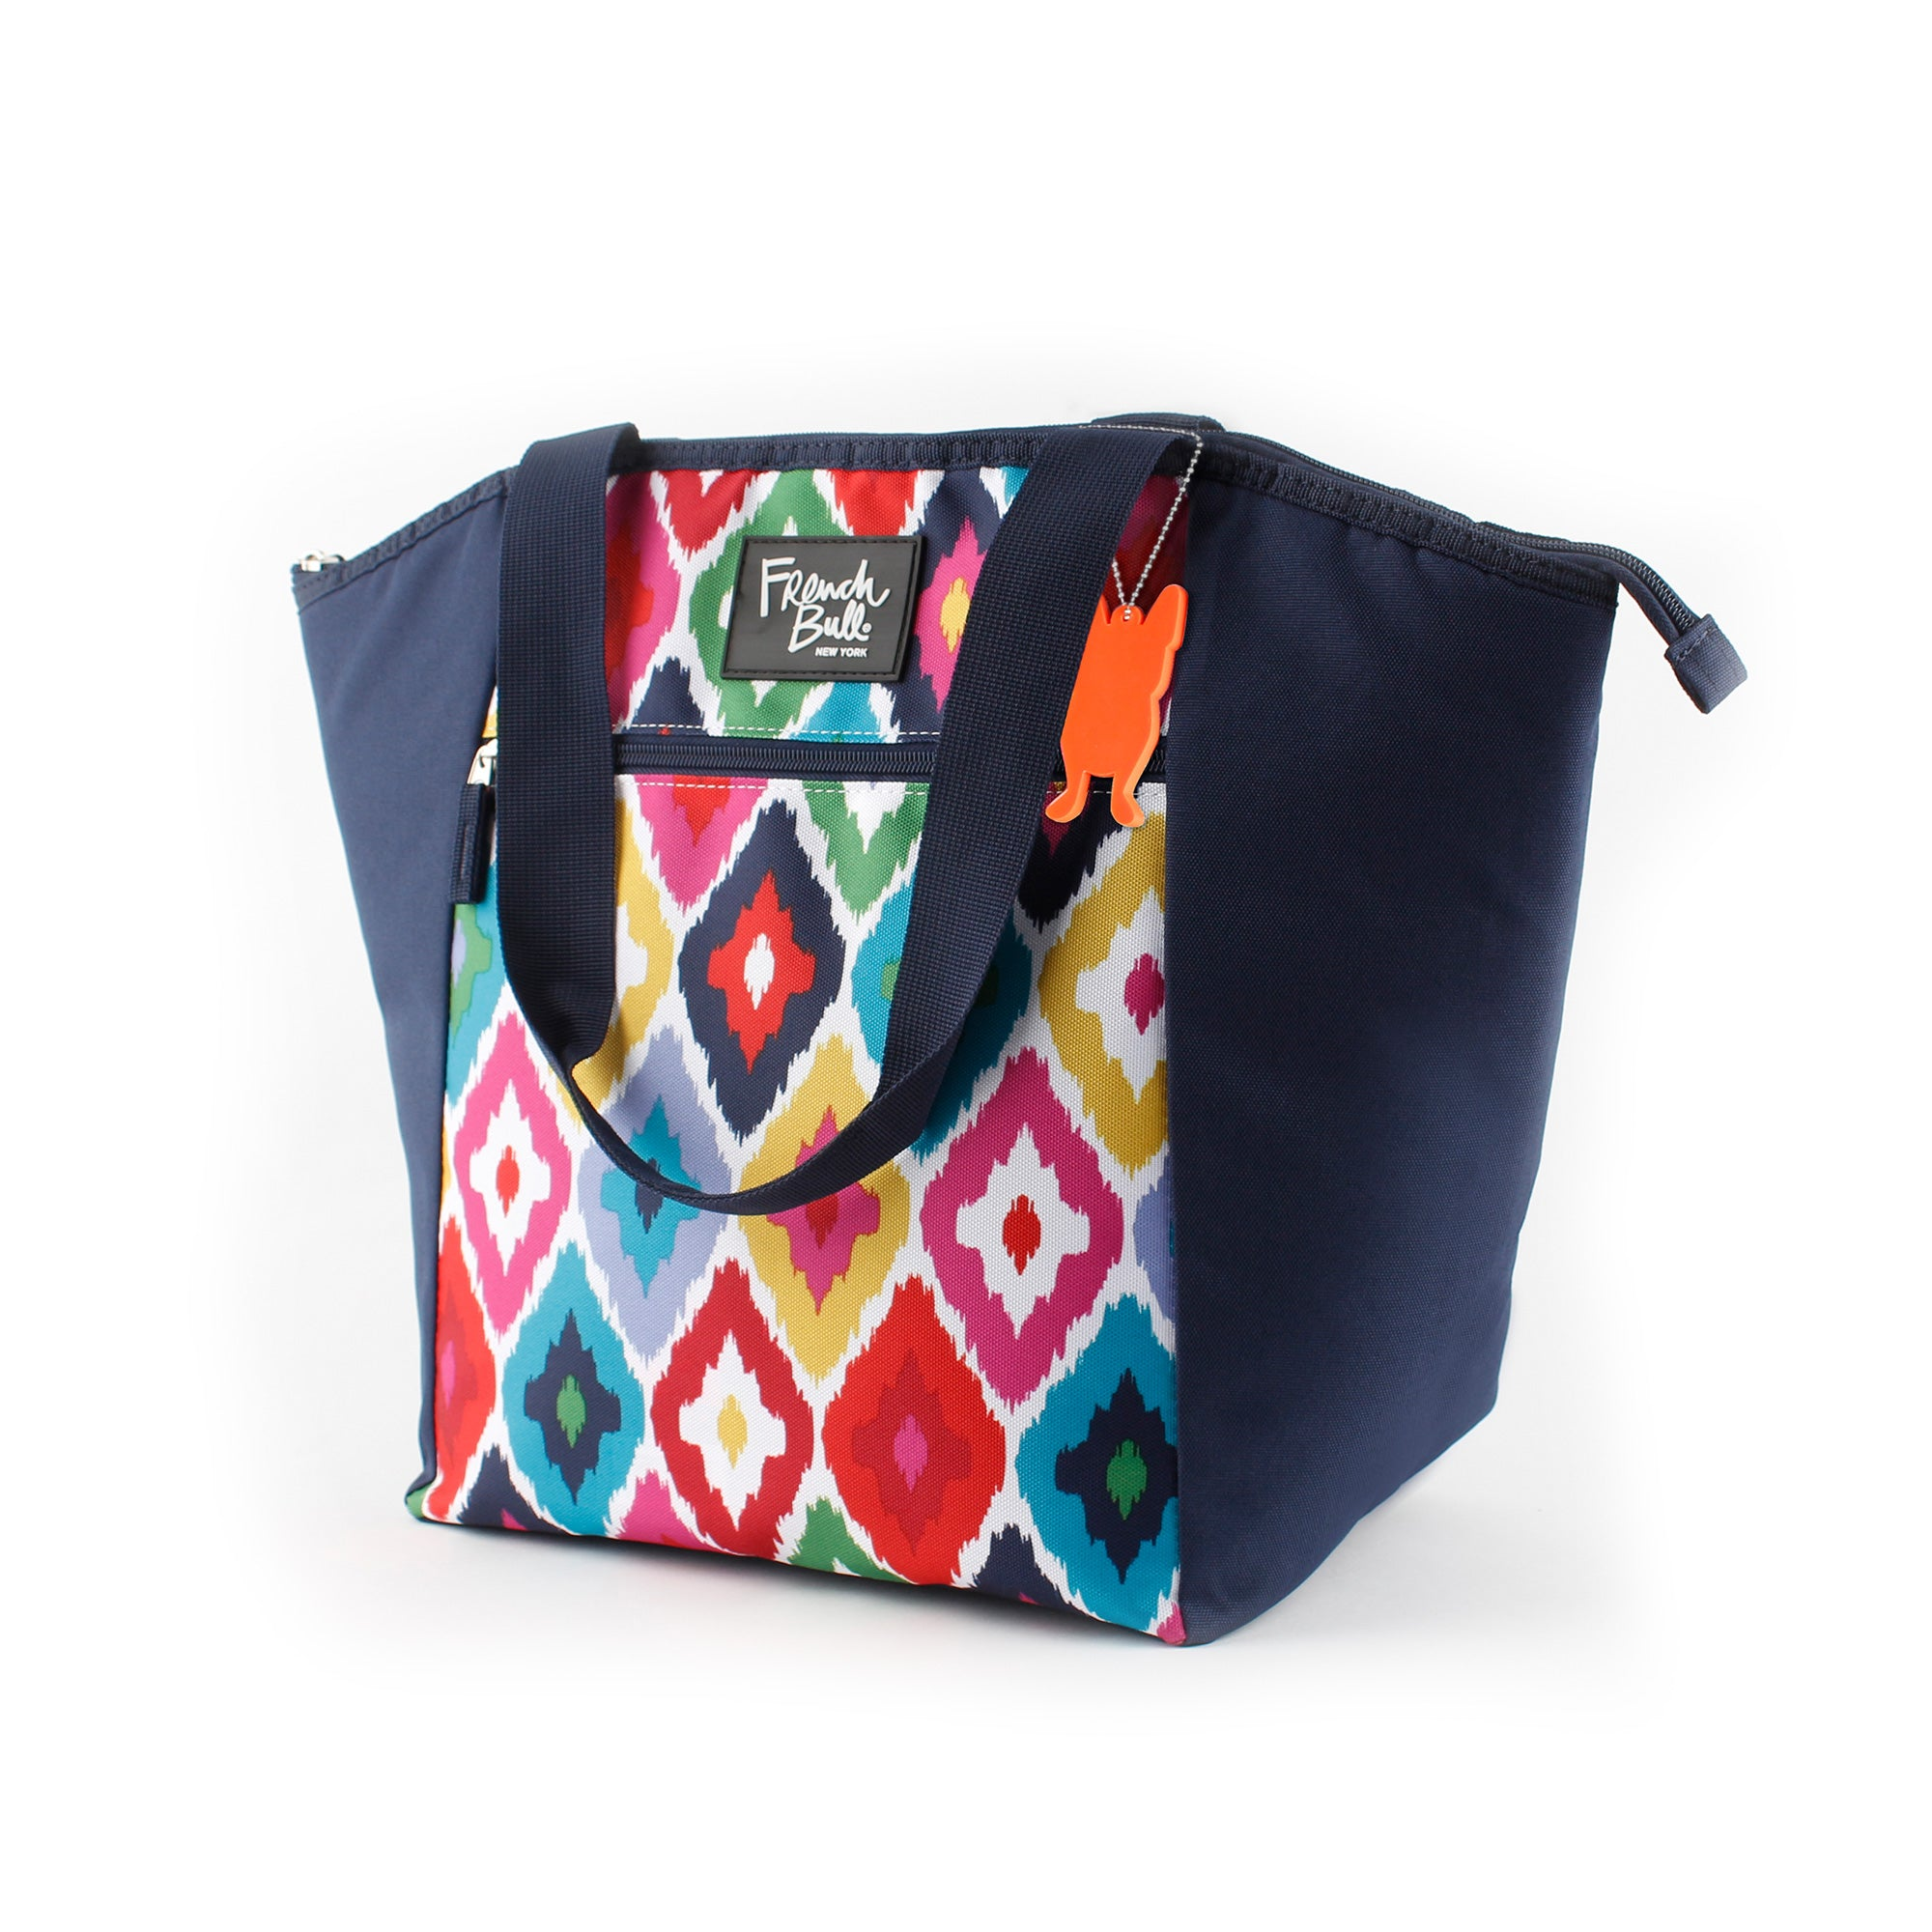 7879df4853 Kat Insulated Shopper Tote Bag - French Bull